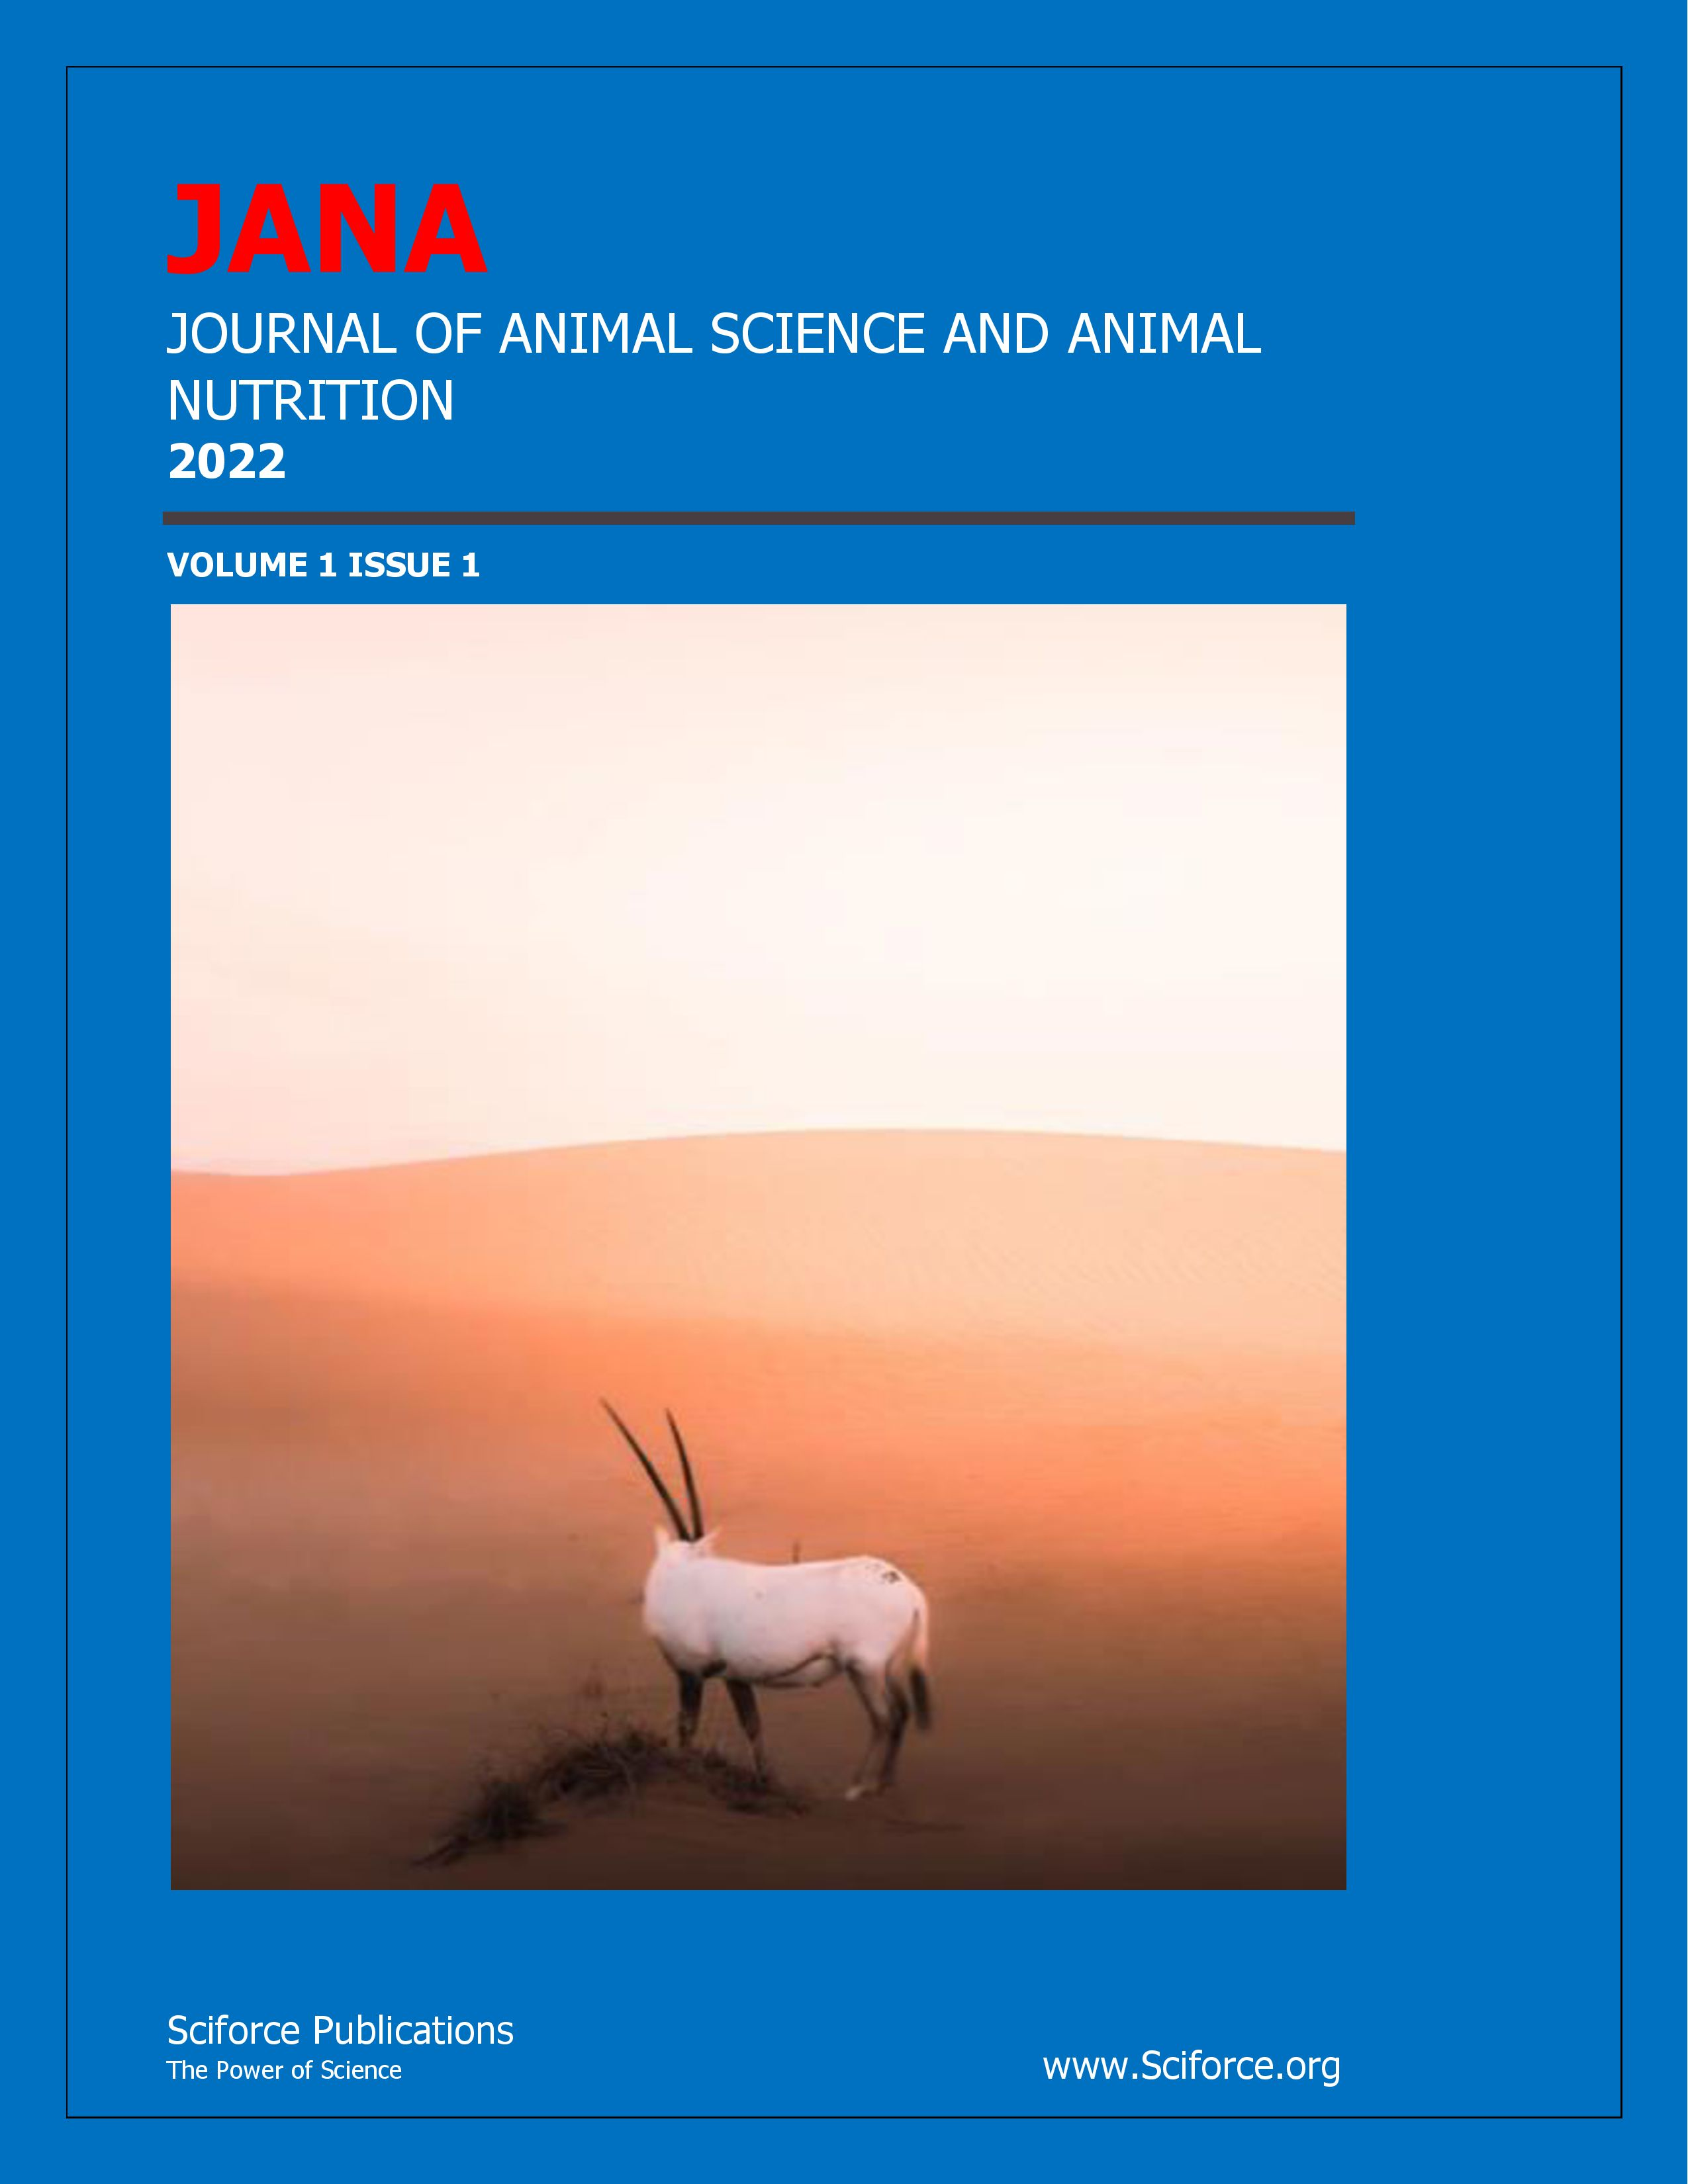 Journal of Animal Nutrition and Animal Sciences